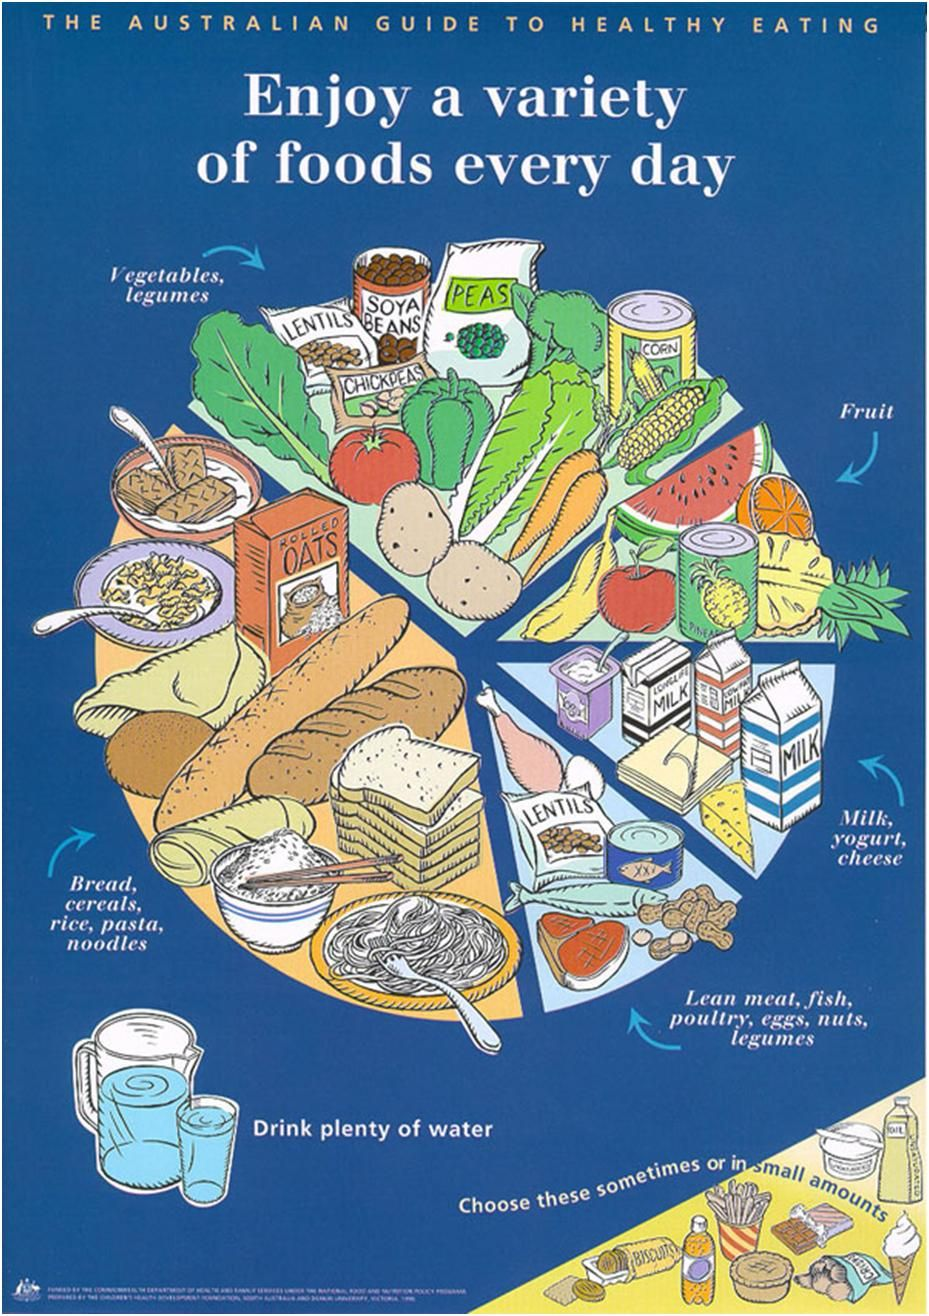 Wow how different from the usa pyramid enjoy a variety of foods xosize health and fitness solutions healthy eating pie chart nvjuhfo Choice Image